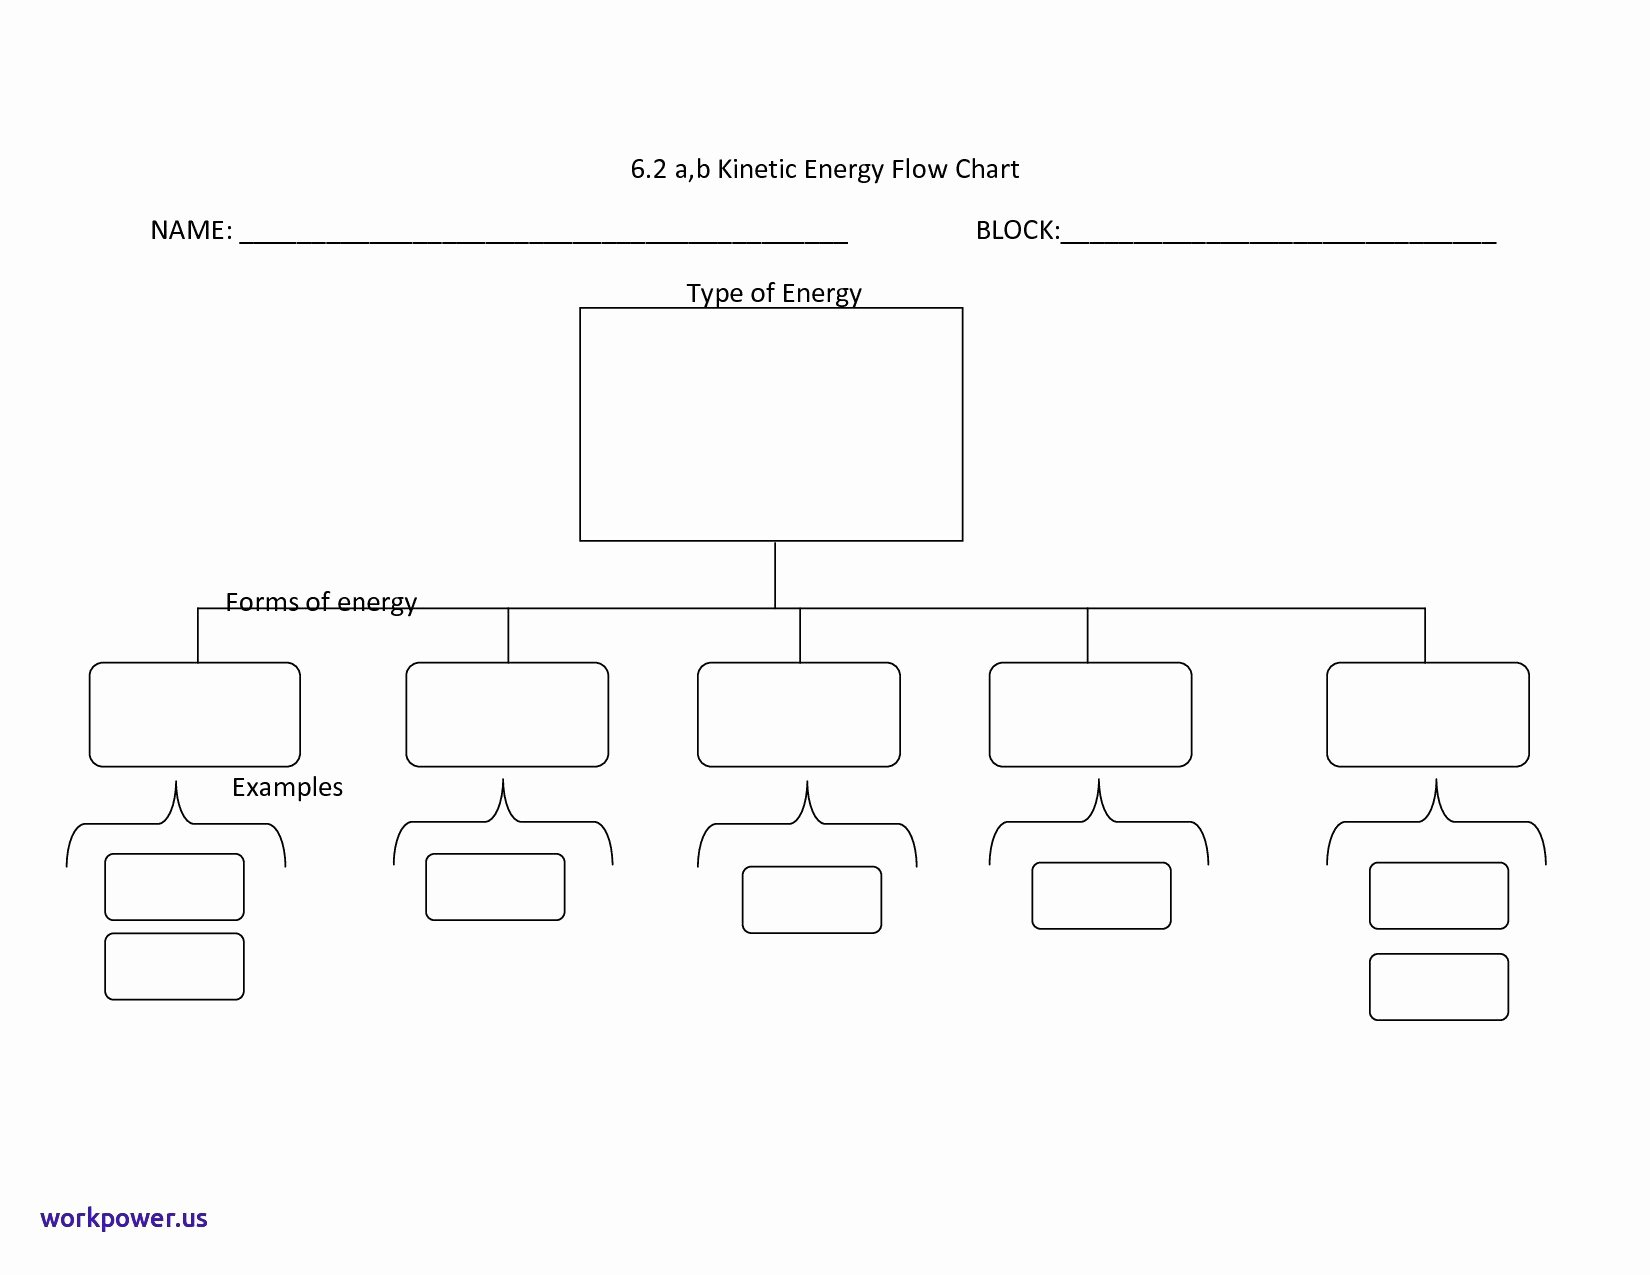 Process Flow Template Word Elegant Blank Flow Chart Template for Word Free – Blank Flow Chart